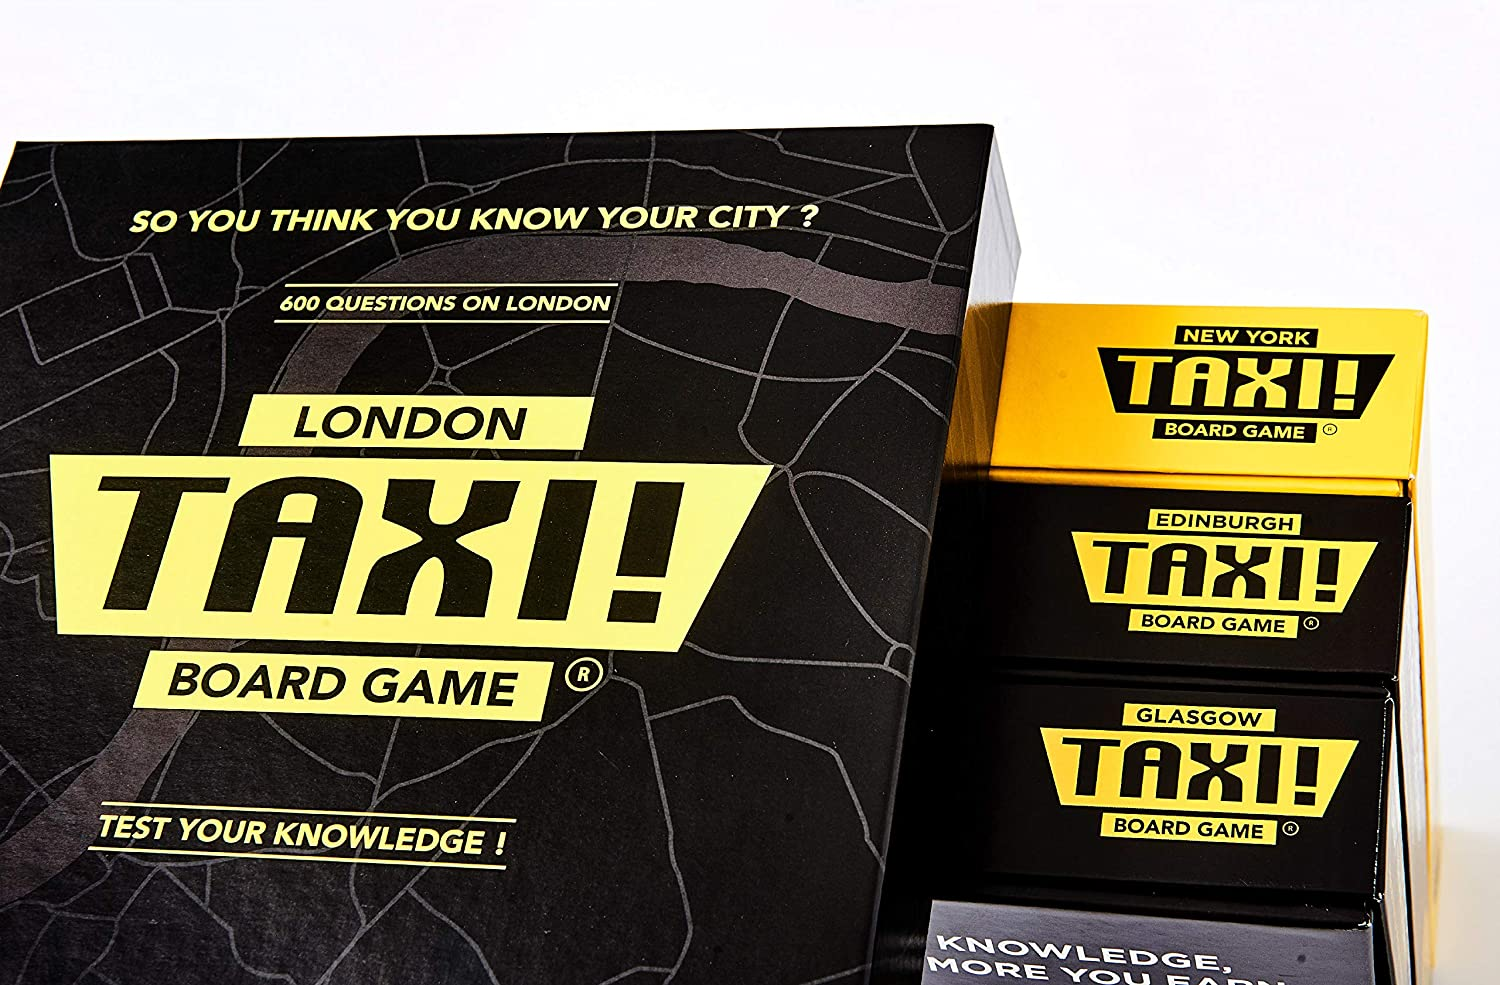 London Taxi Board Game. A Box Full of Fun and Knowledge by Taxi Board Game: Amazon.es: Juguetes y juegos